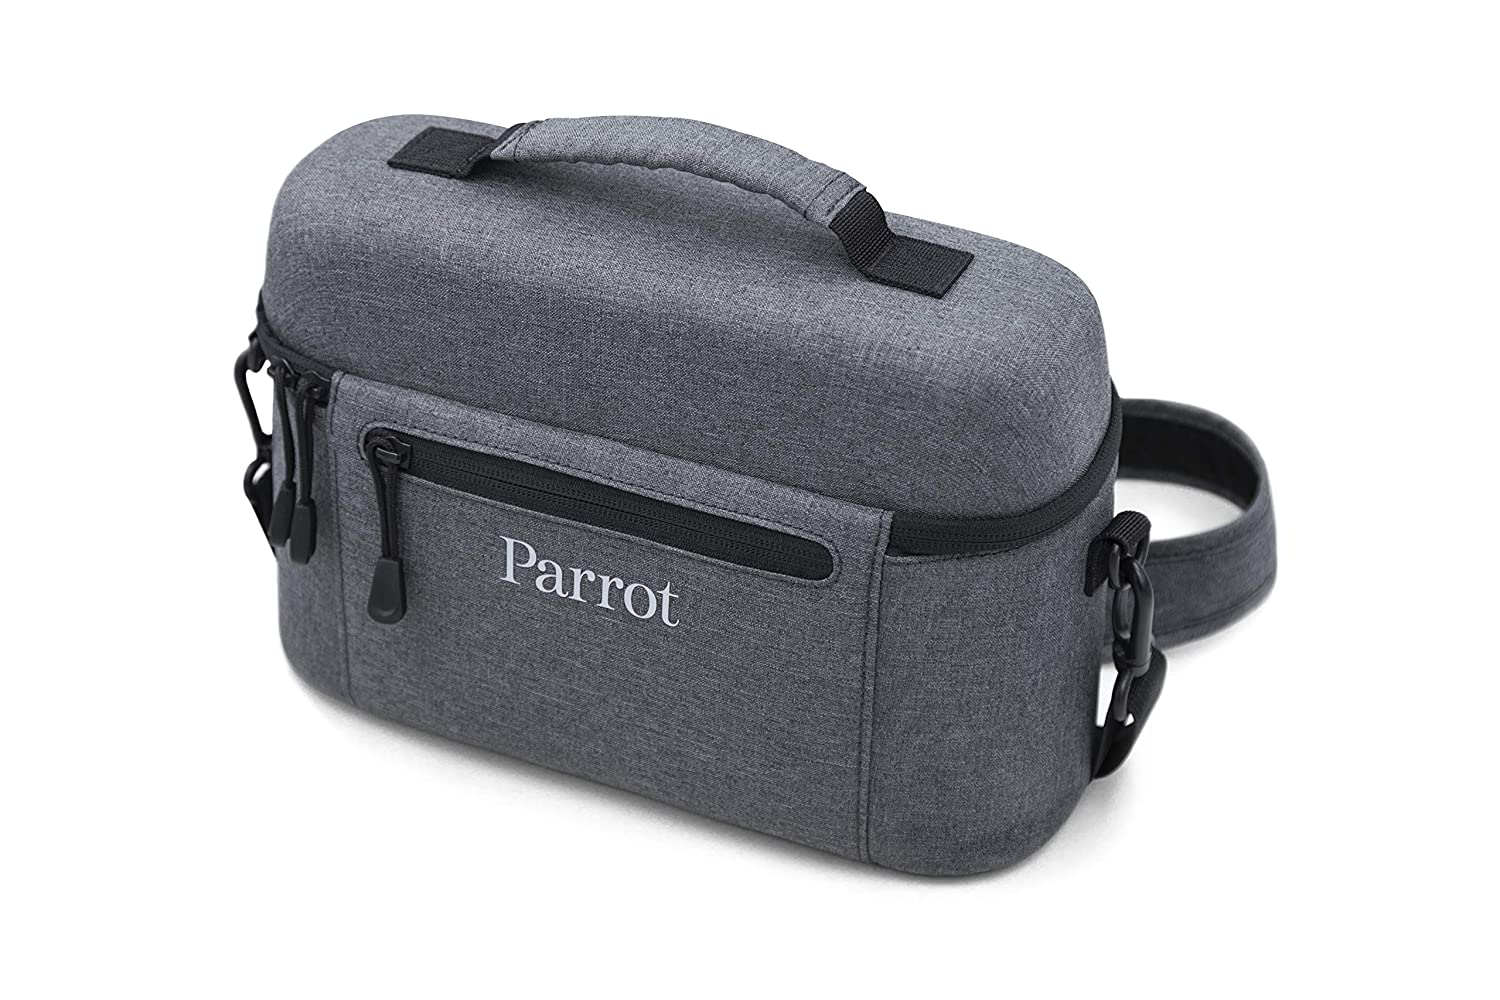 Parrot Anafi Extended Pack, 4K HDR Camera Drone with 2 Additional Batteries  and Carrying Bag